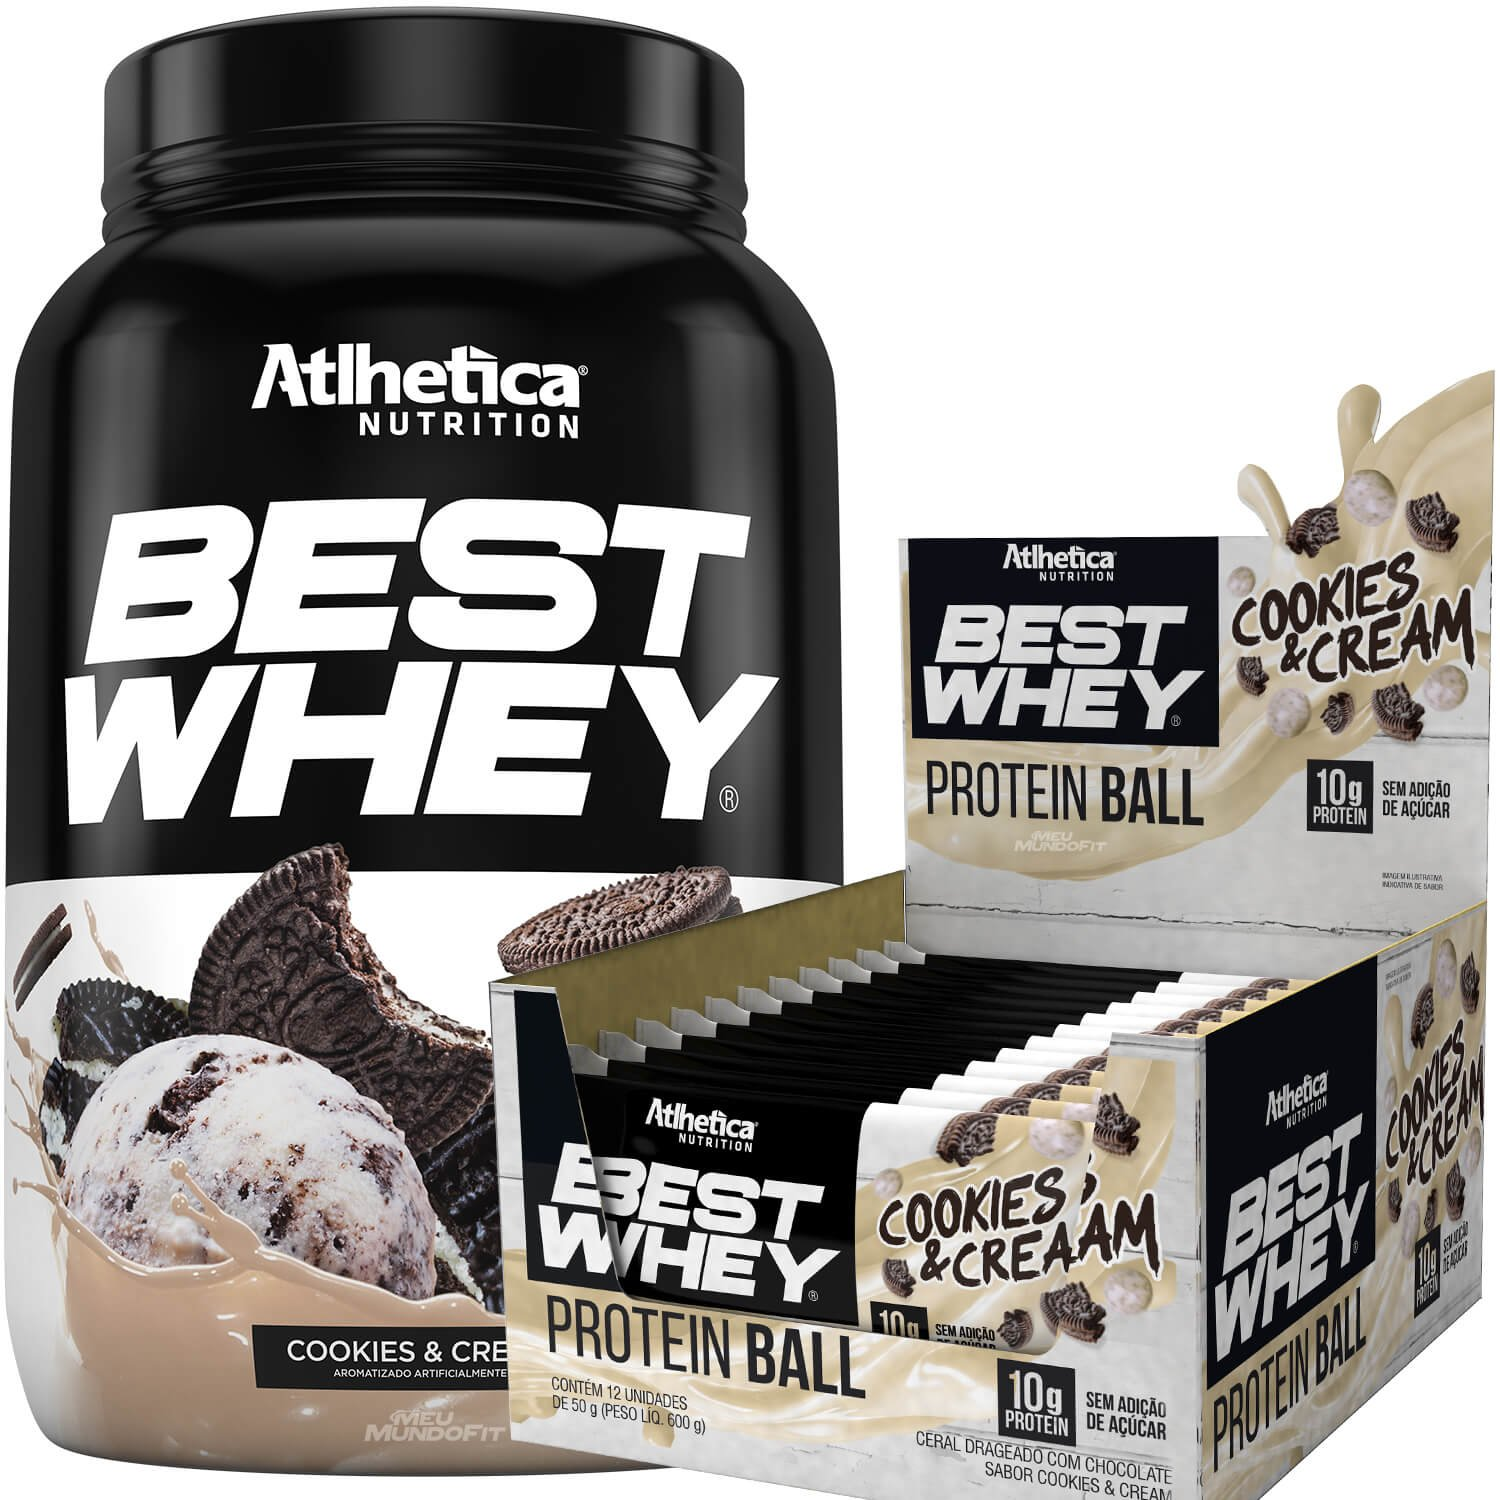 best-whey-protein-ball-atlhetica-nutrition